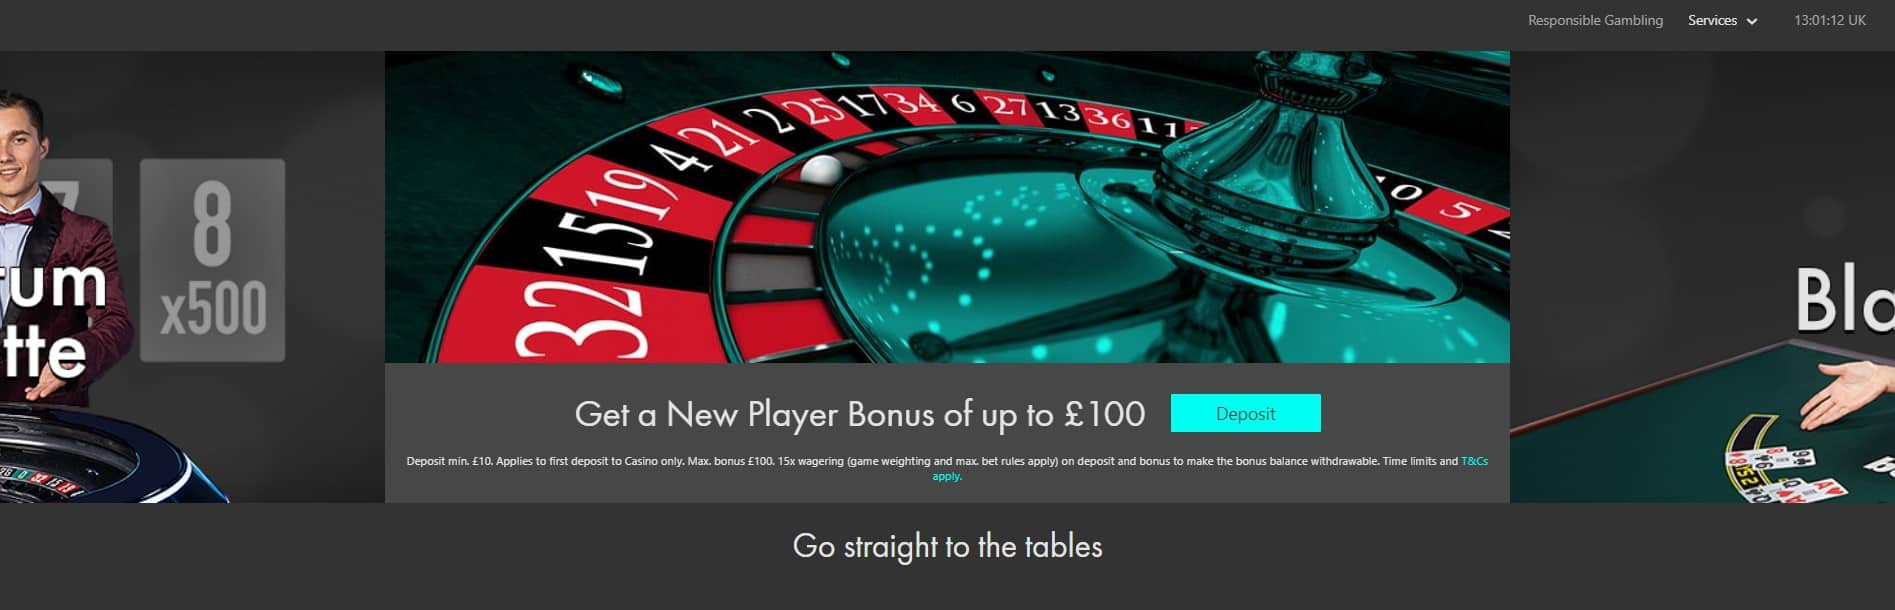 Casino Offers at Bet365 - What is a Bookmaker